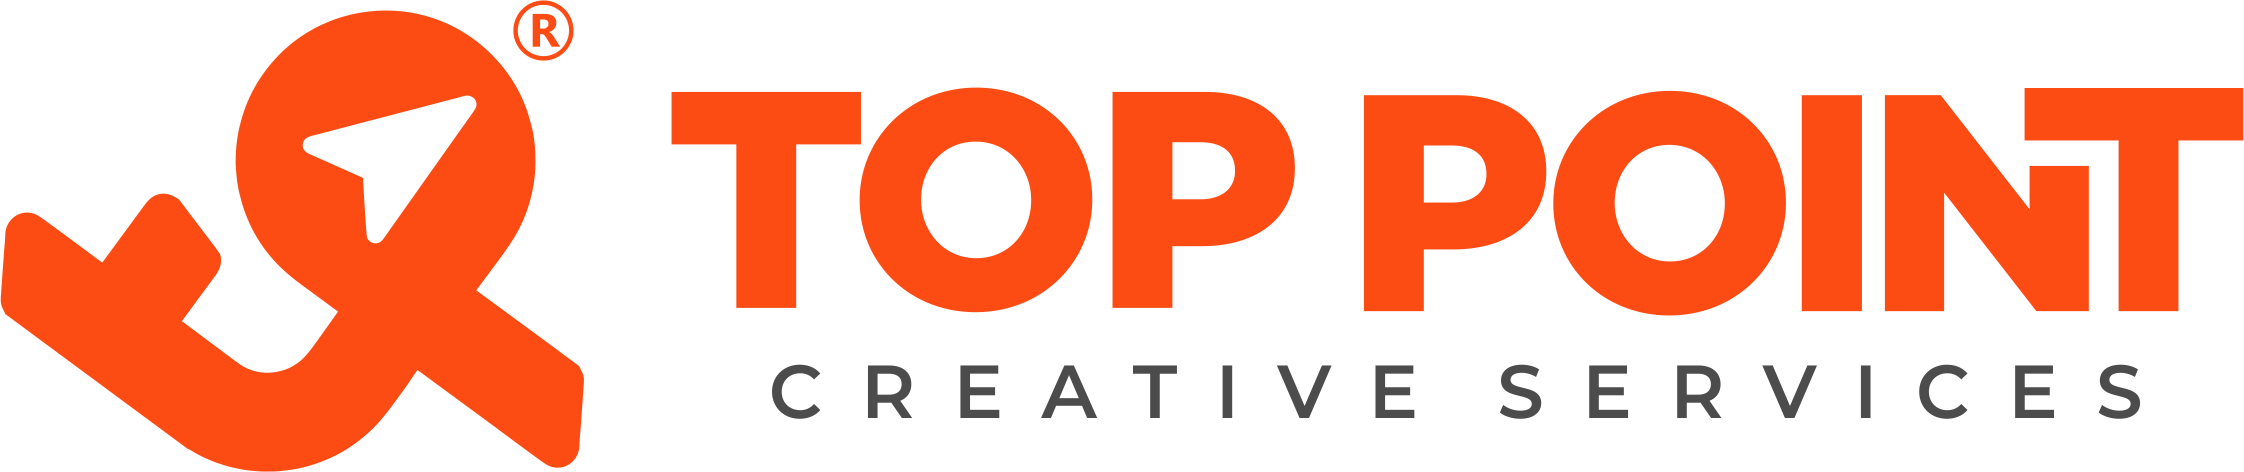 Top Point Creative Services